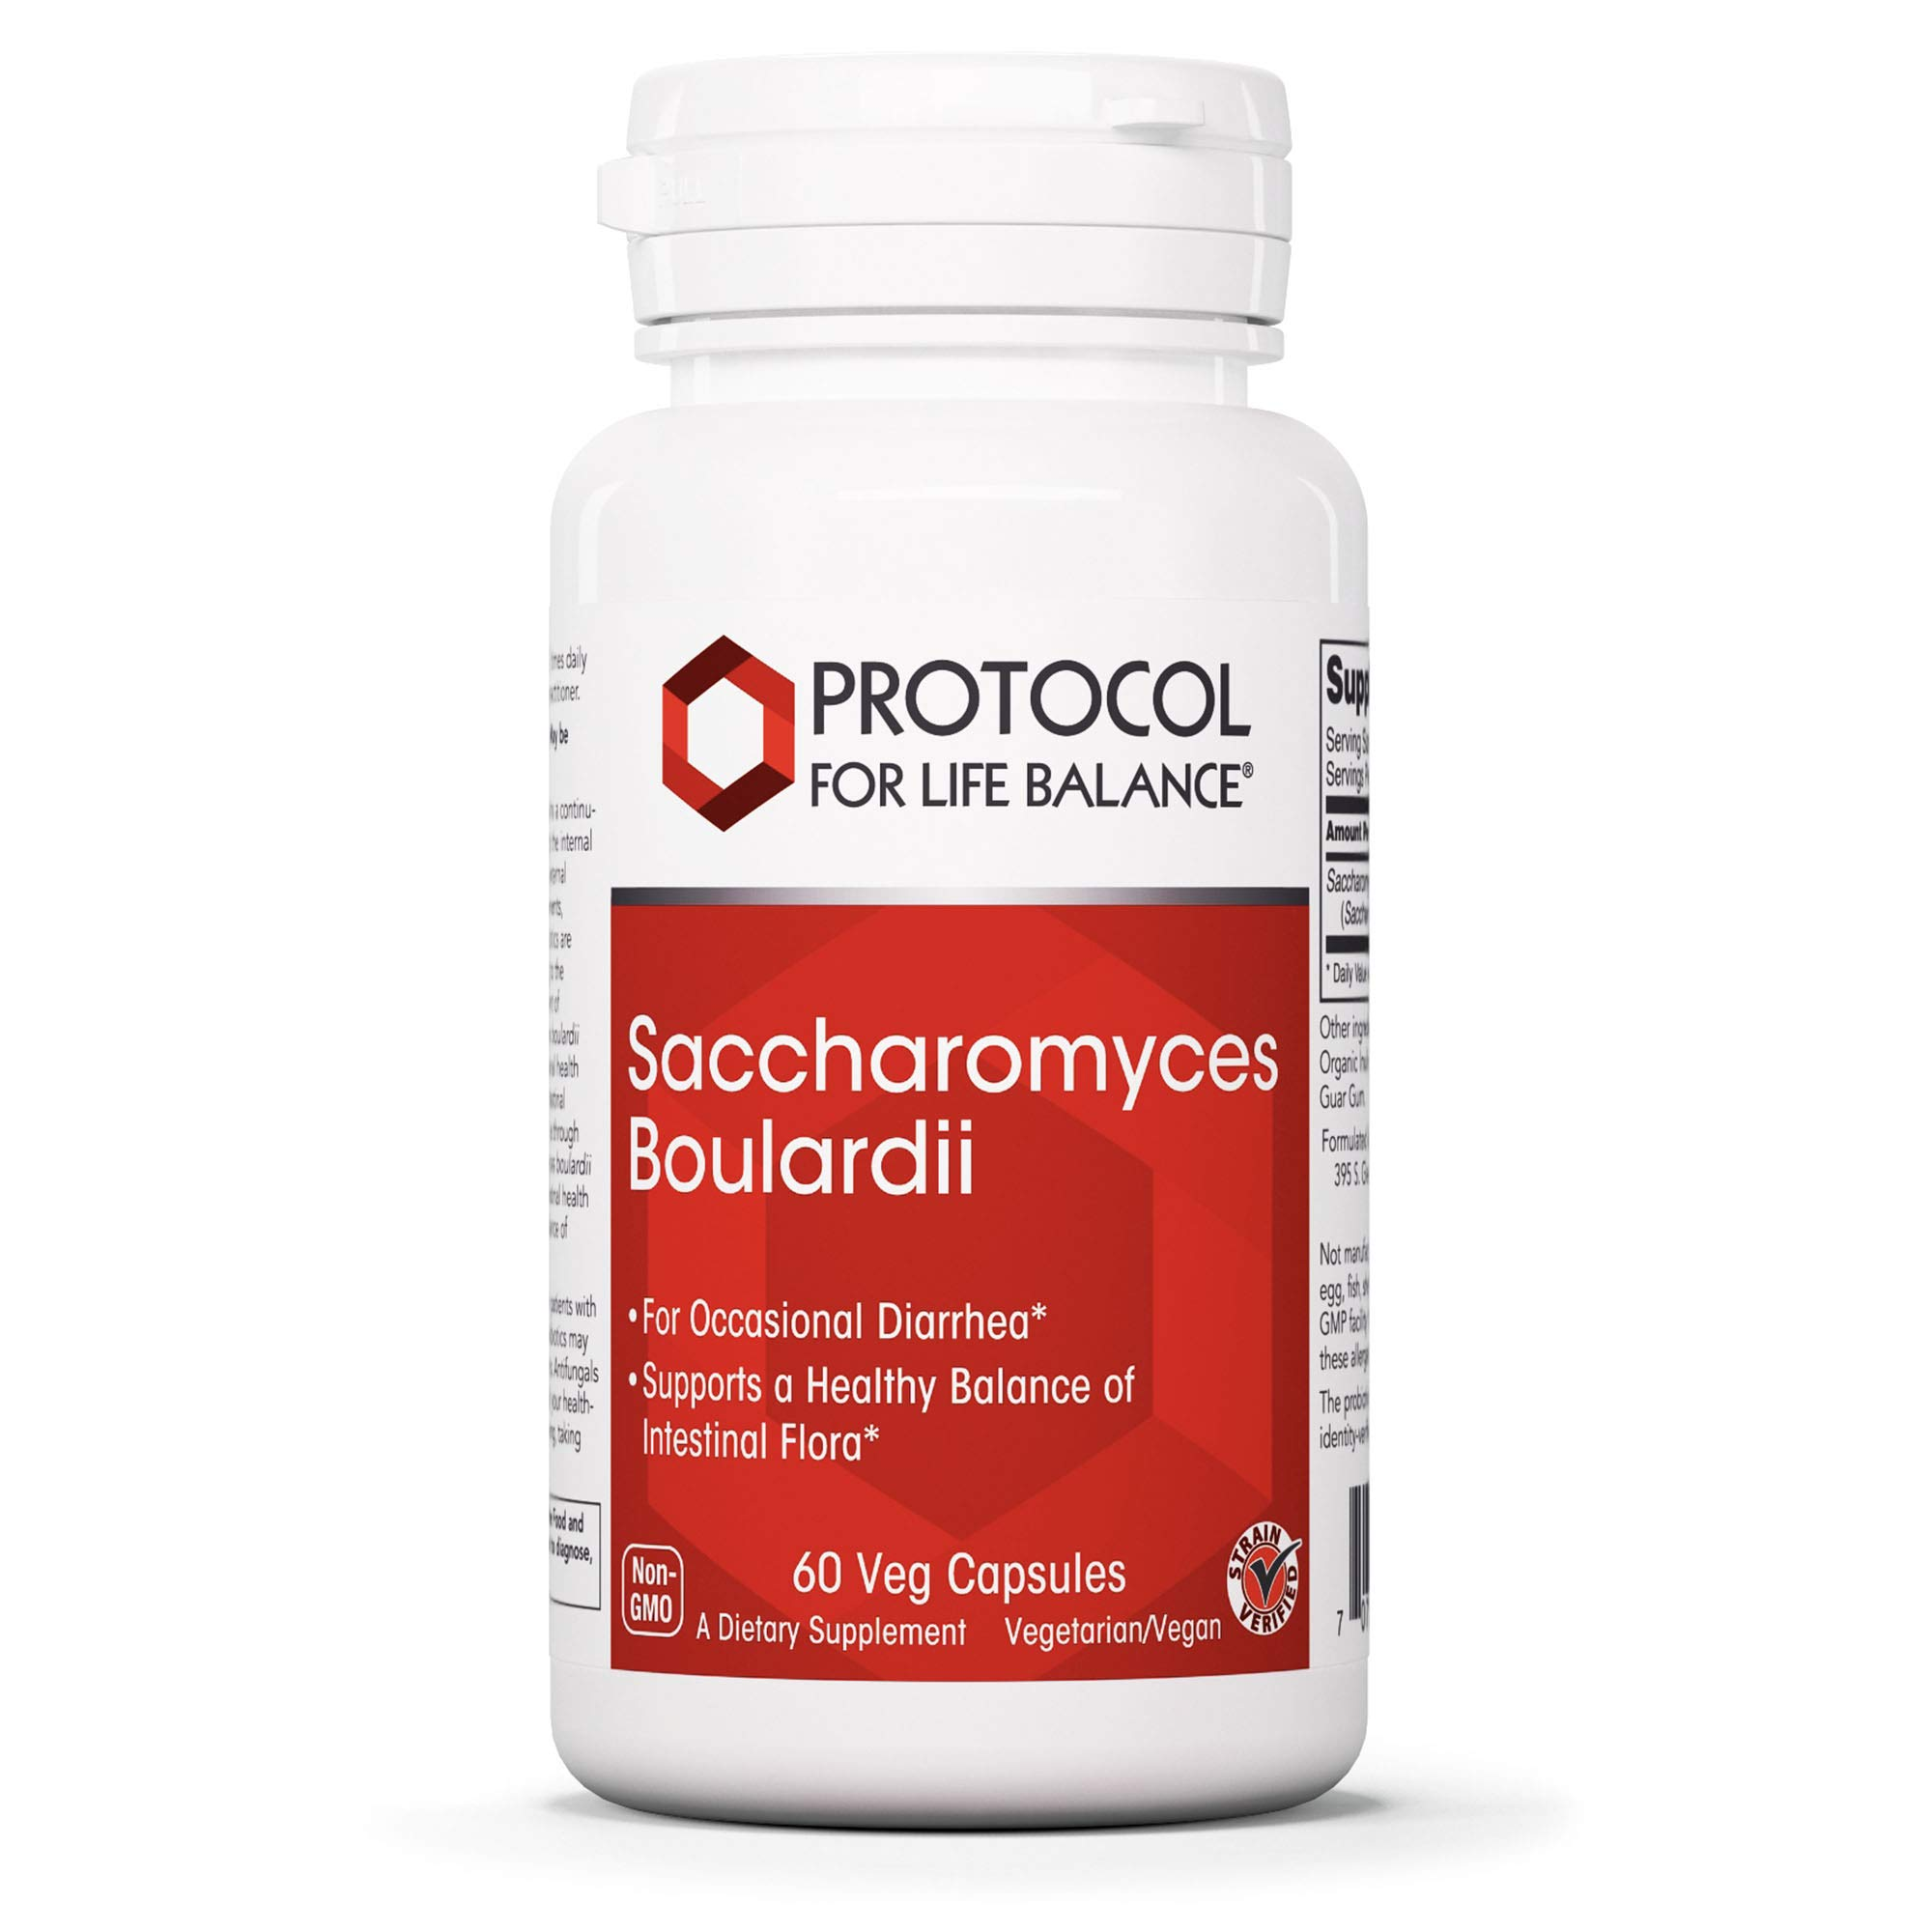 Protocol For Life Balance - Saccharomyces Boulardii - Supports a Healthy Balance of Intestinal Flora, GI Tract Relief, Upset Stomach, Immunity, Digestion, and Gut Health - 60 Veg Capsules